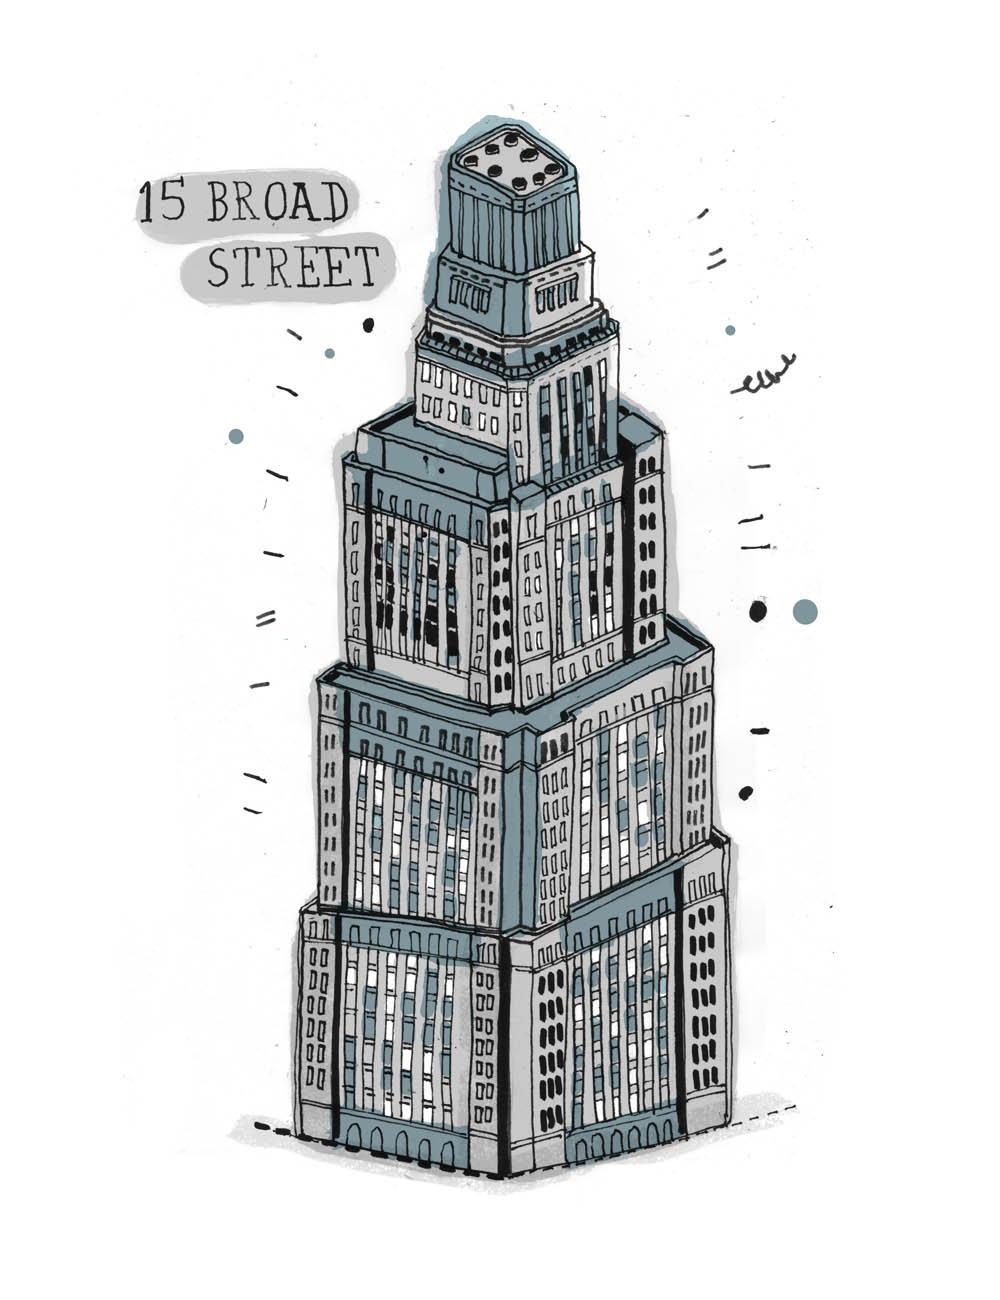 Drawn bulding  creative Buildings Invisible the 99%